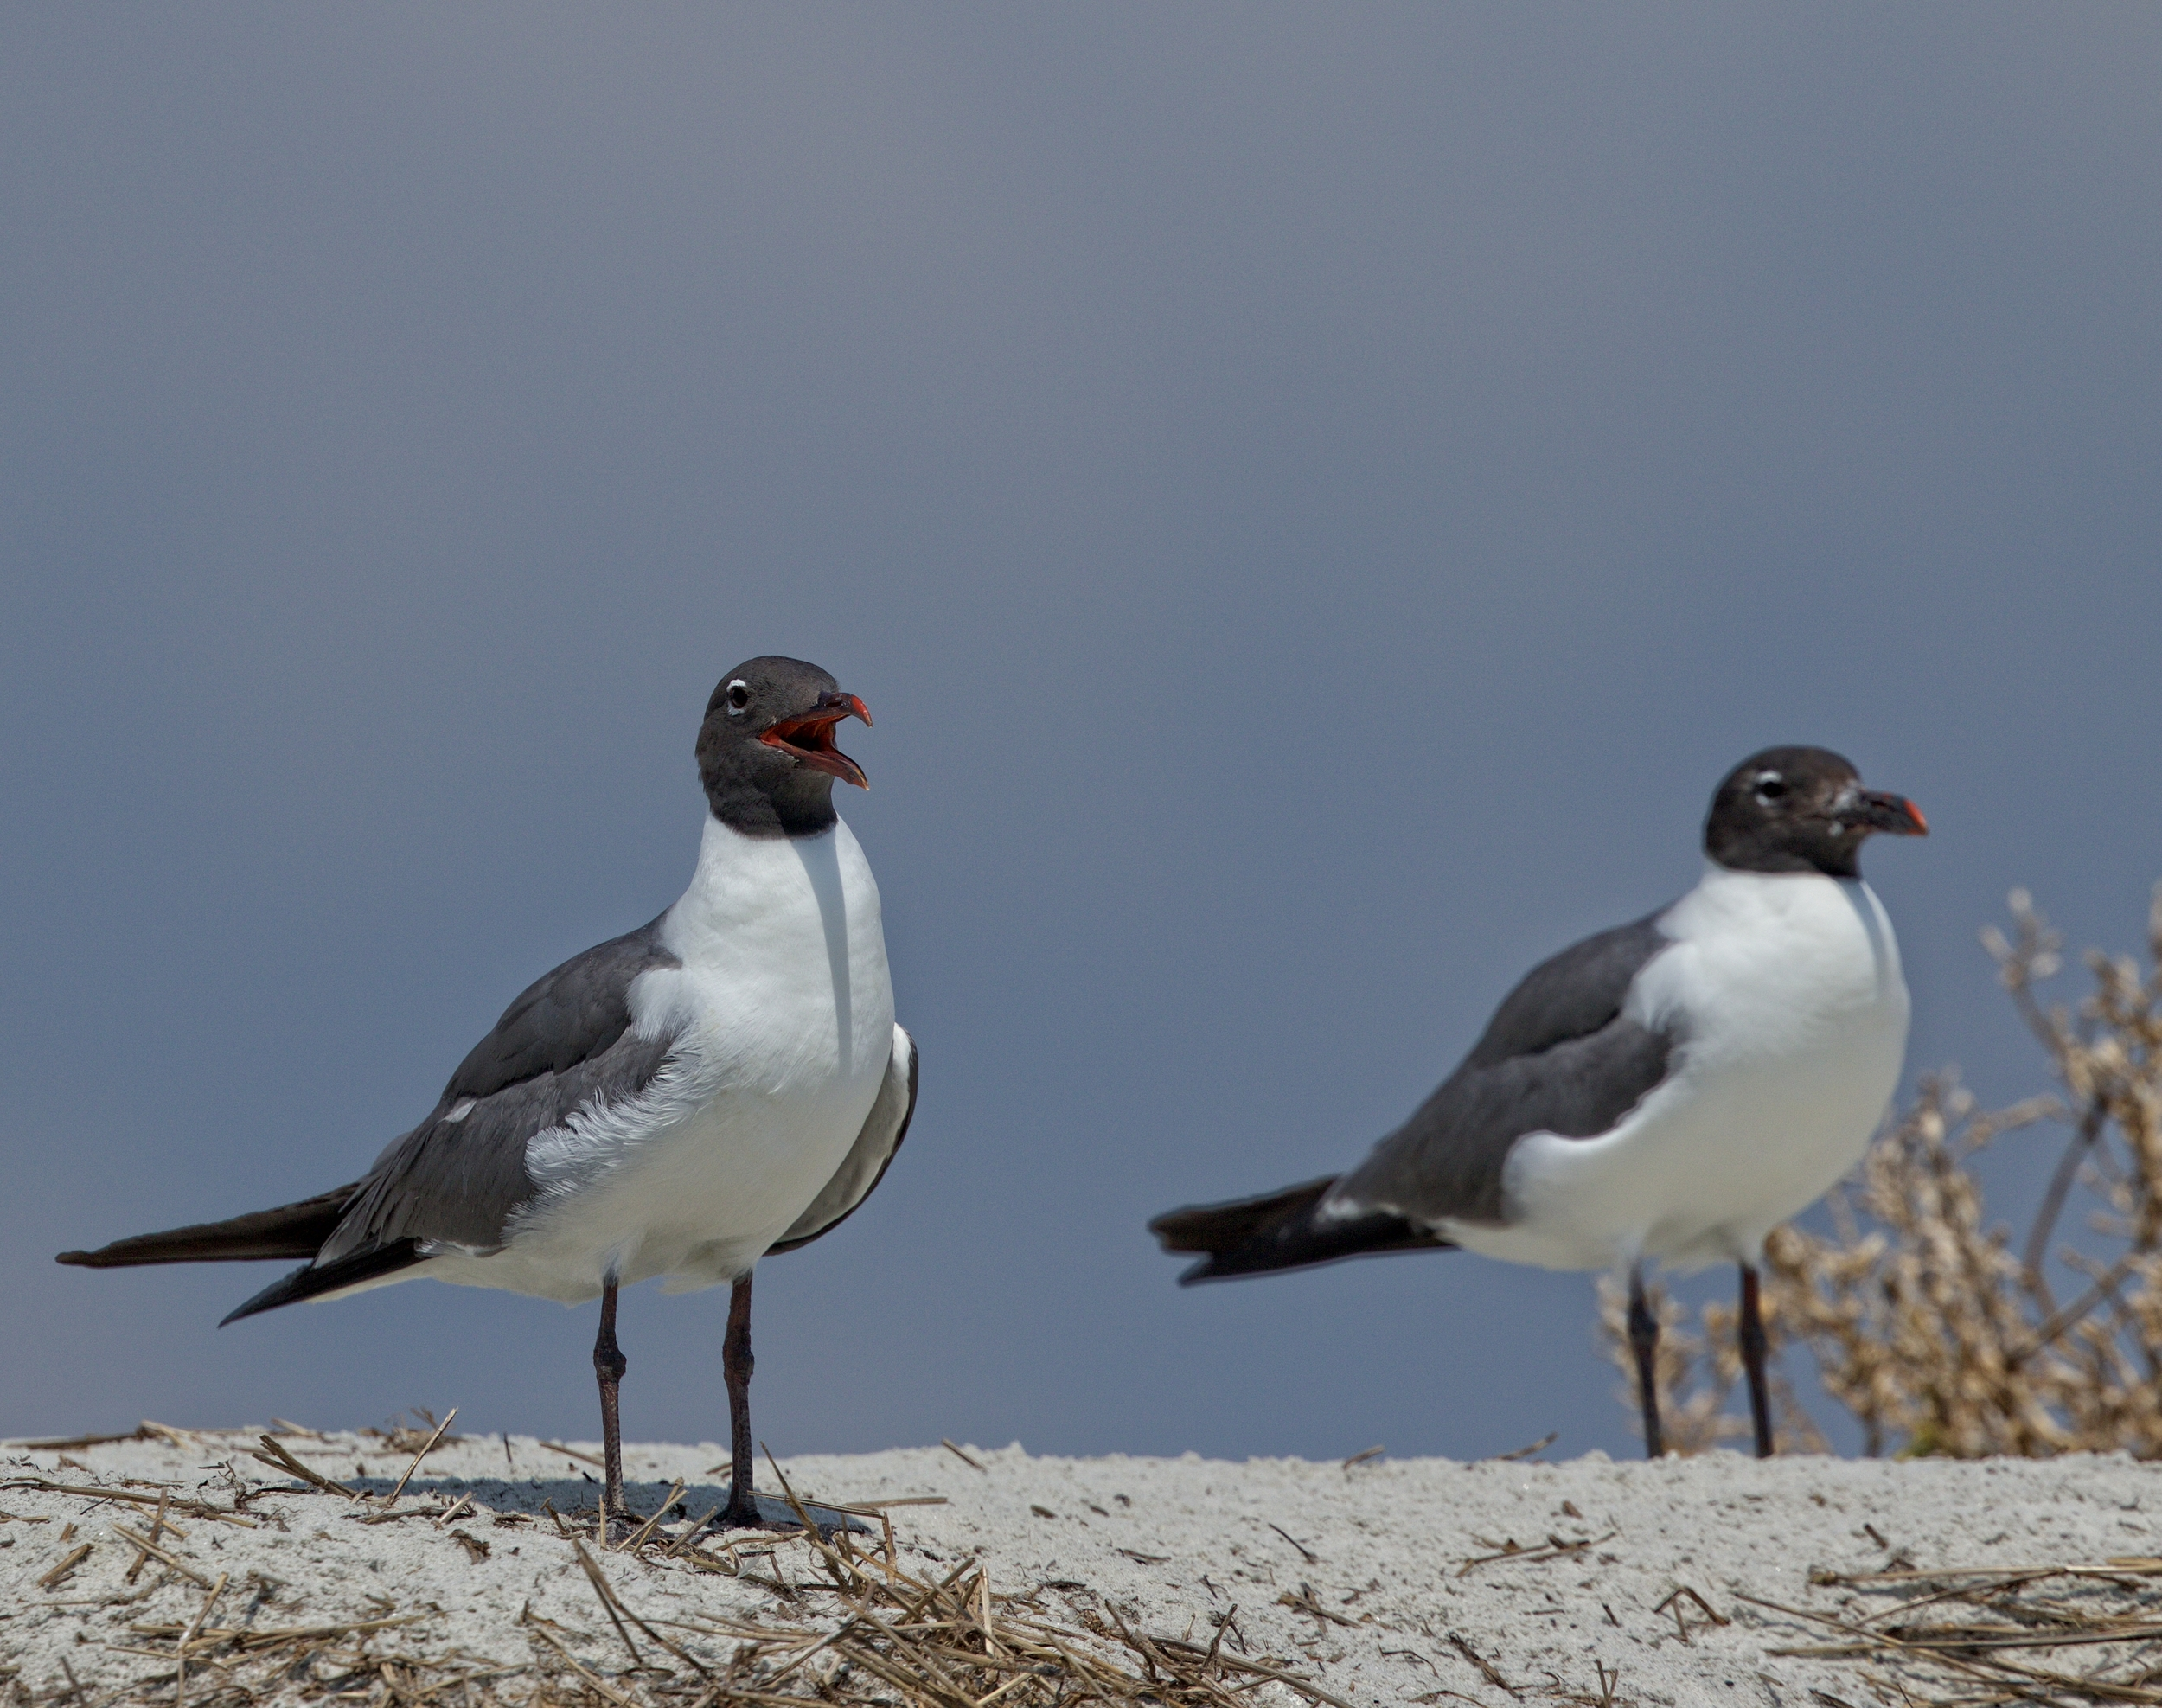 """""""Well, we hatched our young ones..time for some easy pickings on those Royals over there!"""" Laughing Gulls prepare to steal food from the Royal Terns.."""